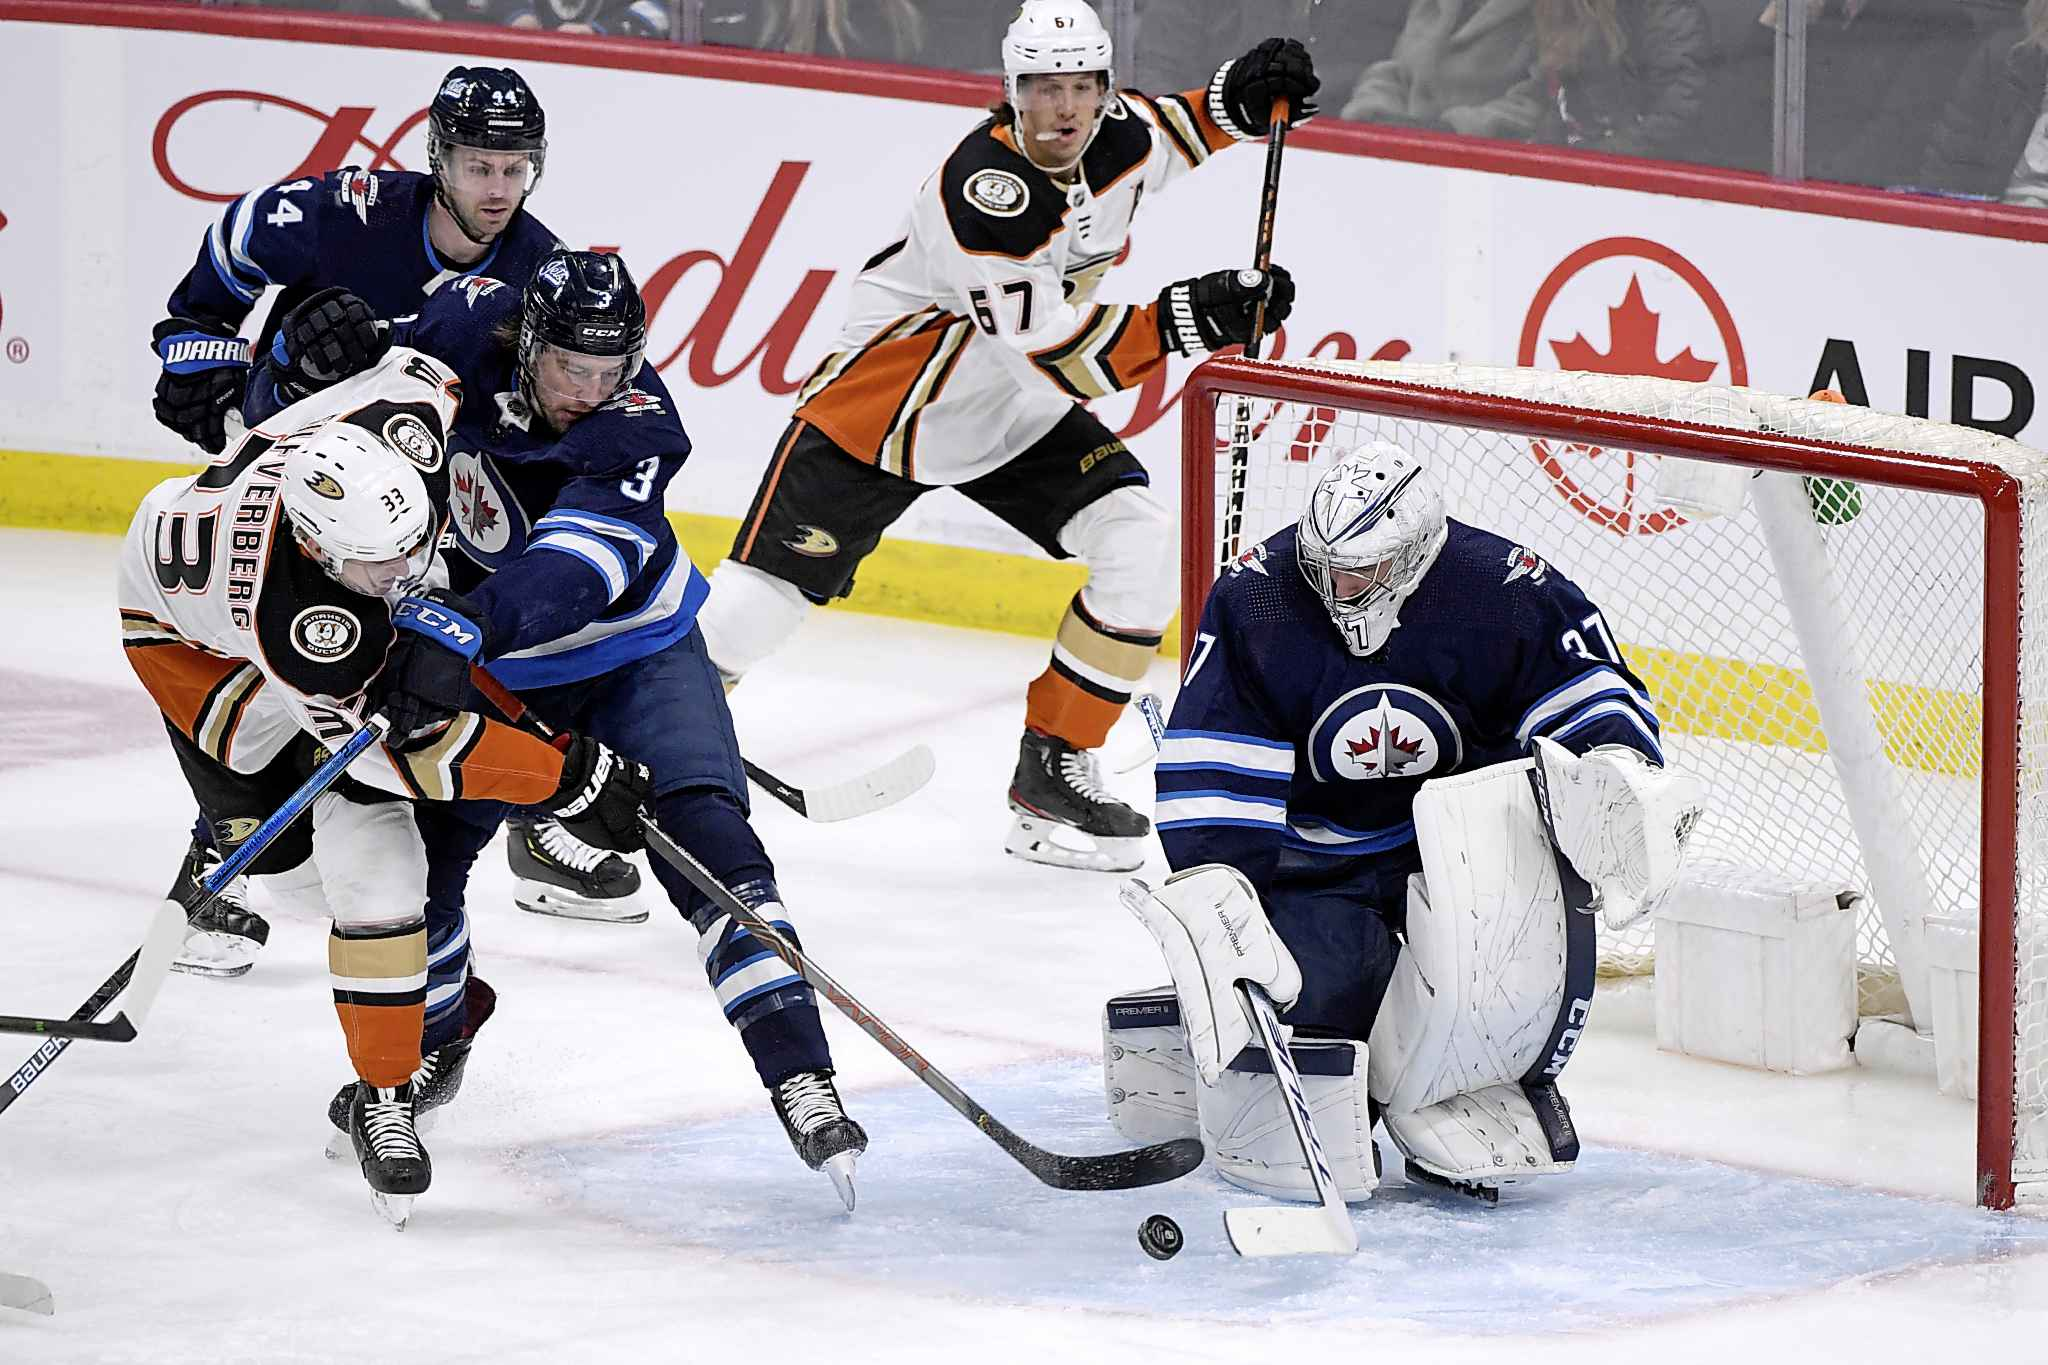 Winnipeg Jets goaltender Connor Hellebuyck (37) sweeps aside a shot by Anaheim Ducks' Jakob Silfverberg (33) as Tucker Poolman (3) defends during the first period. (Fred Greenslade / The Canadian Press)</p>